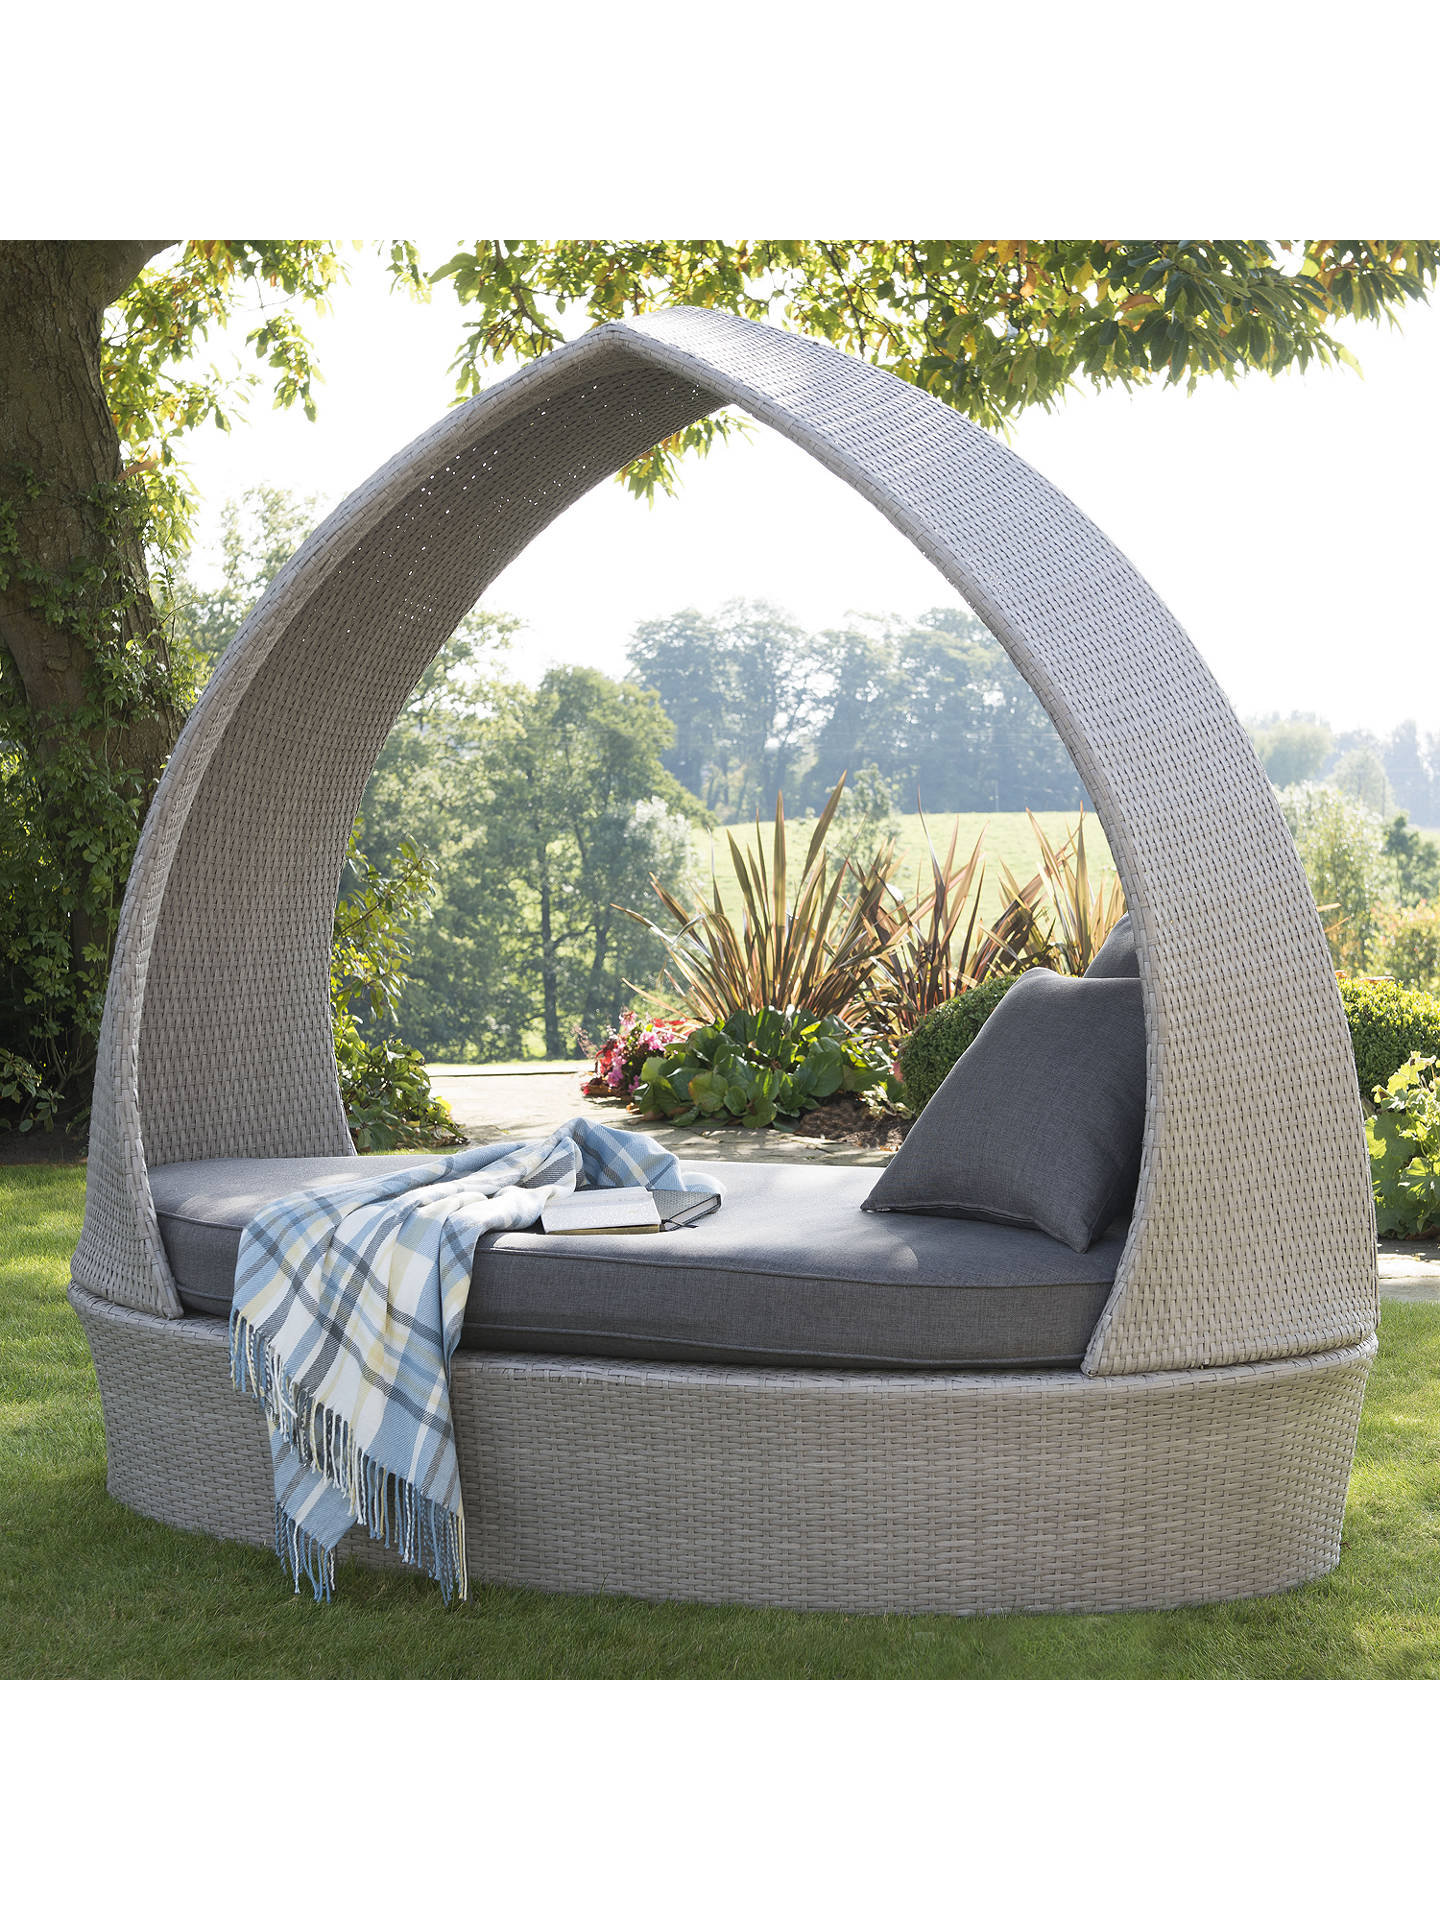 Buy KETTLER Palma Garden Pod Chair, White Wash Online at johnlewis.com